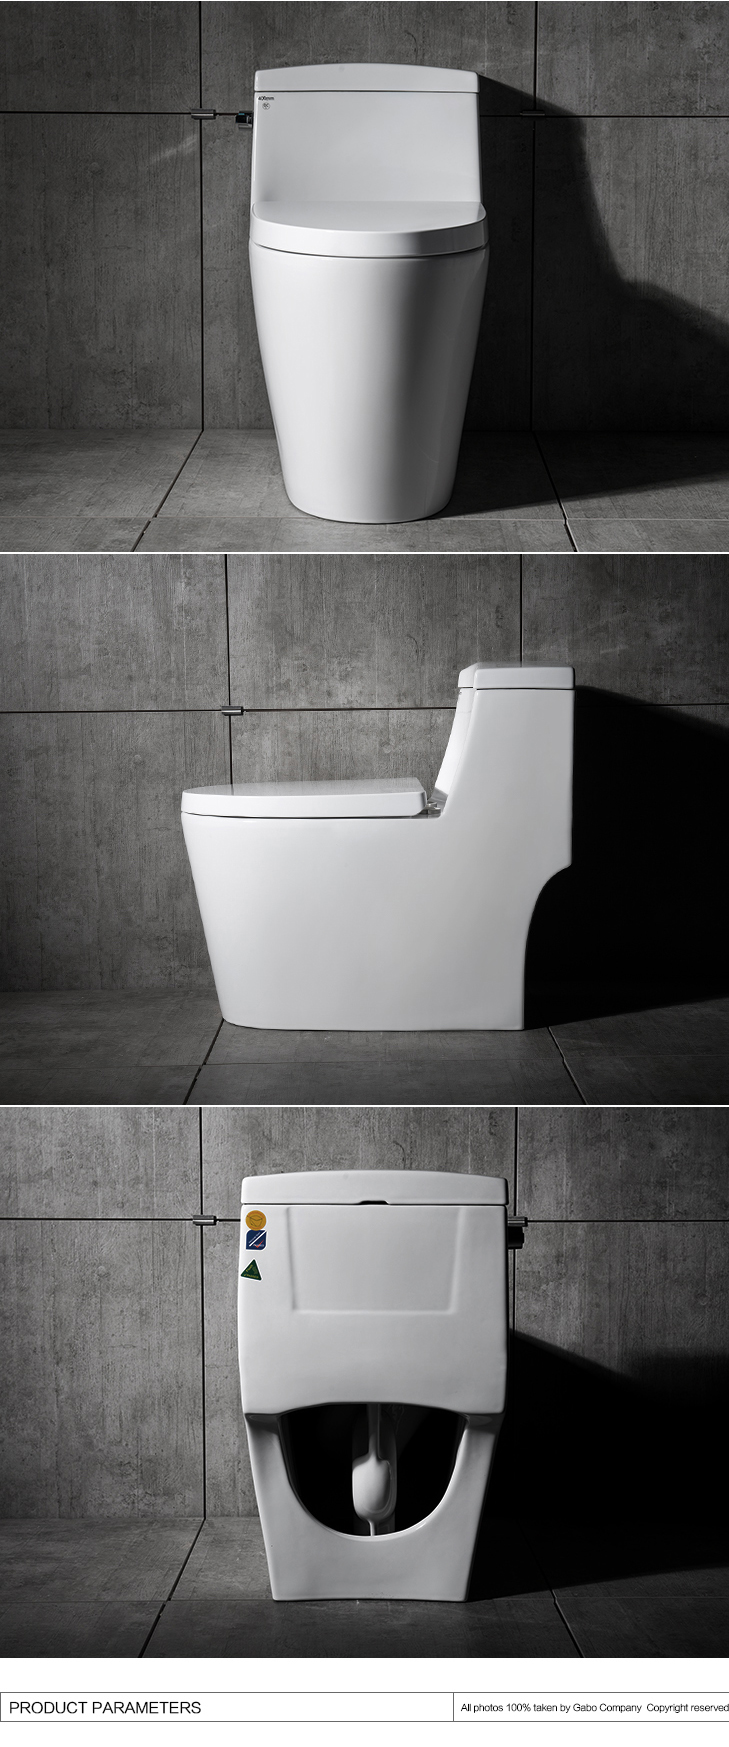 Chinese Made White Colored Public Toilet Bowl